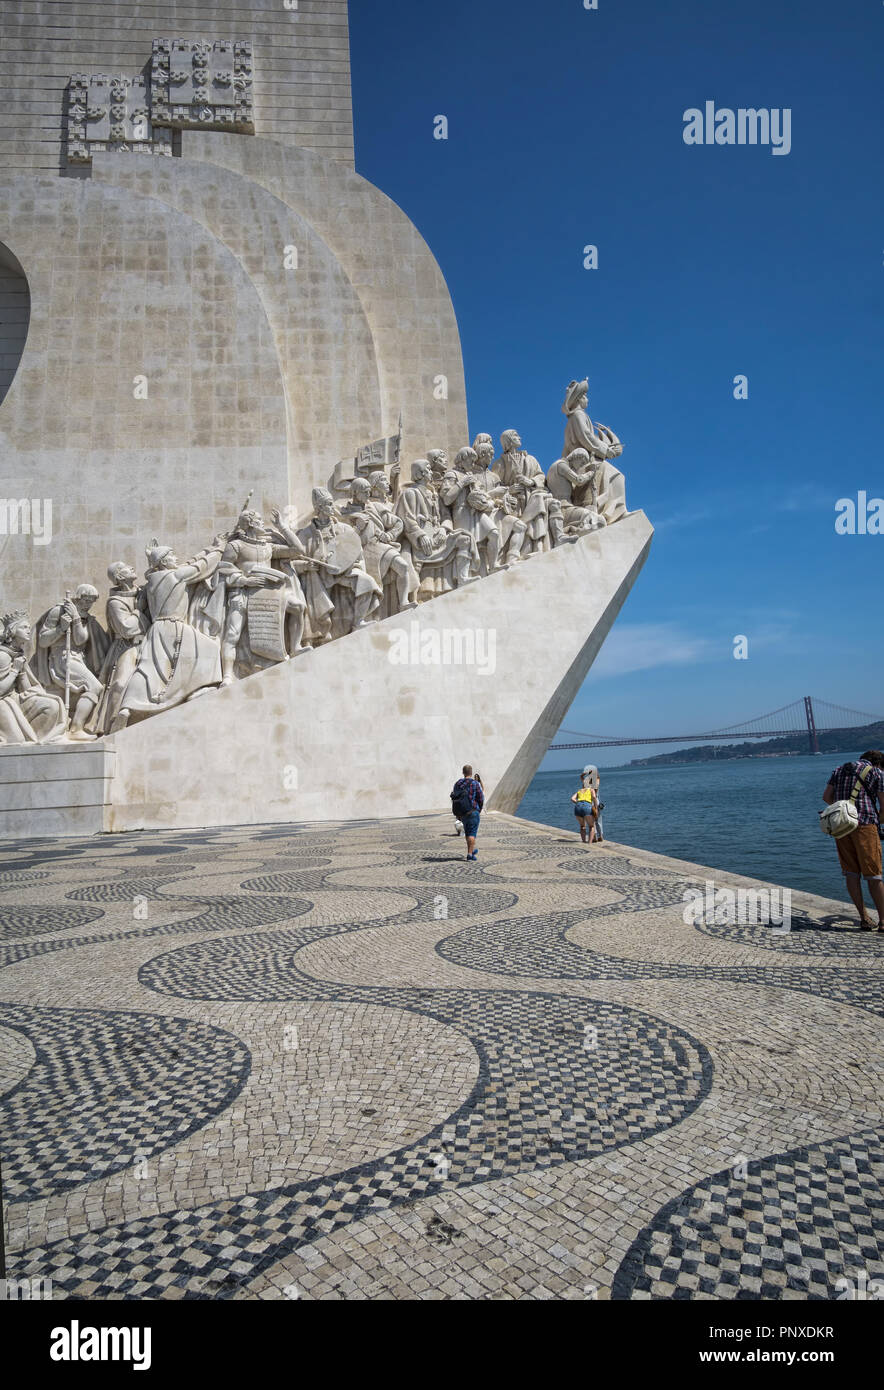 LISBON, PORTUGAL - August 30, 2018: Monument to the Discoveries (Padrao dos Descobrimentos) at the Tagus river with view on 25th of April Bridge Stock Photo